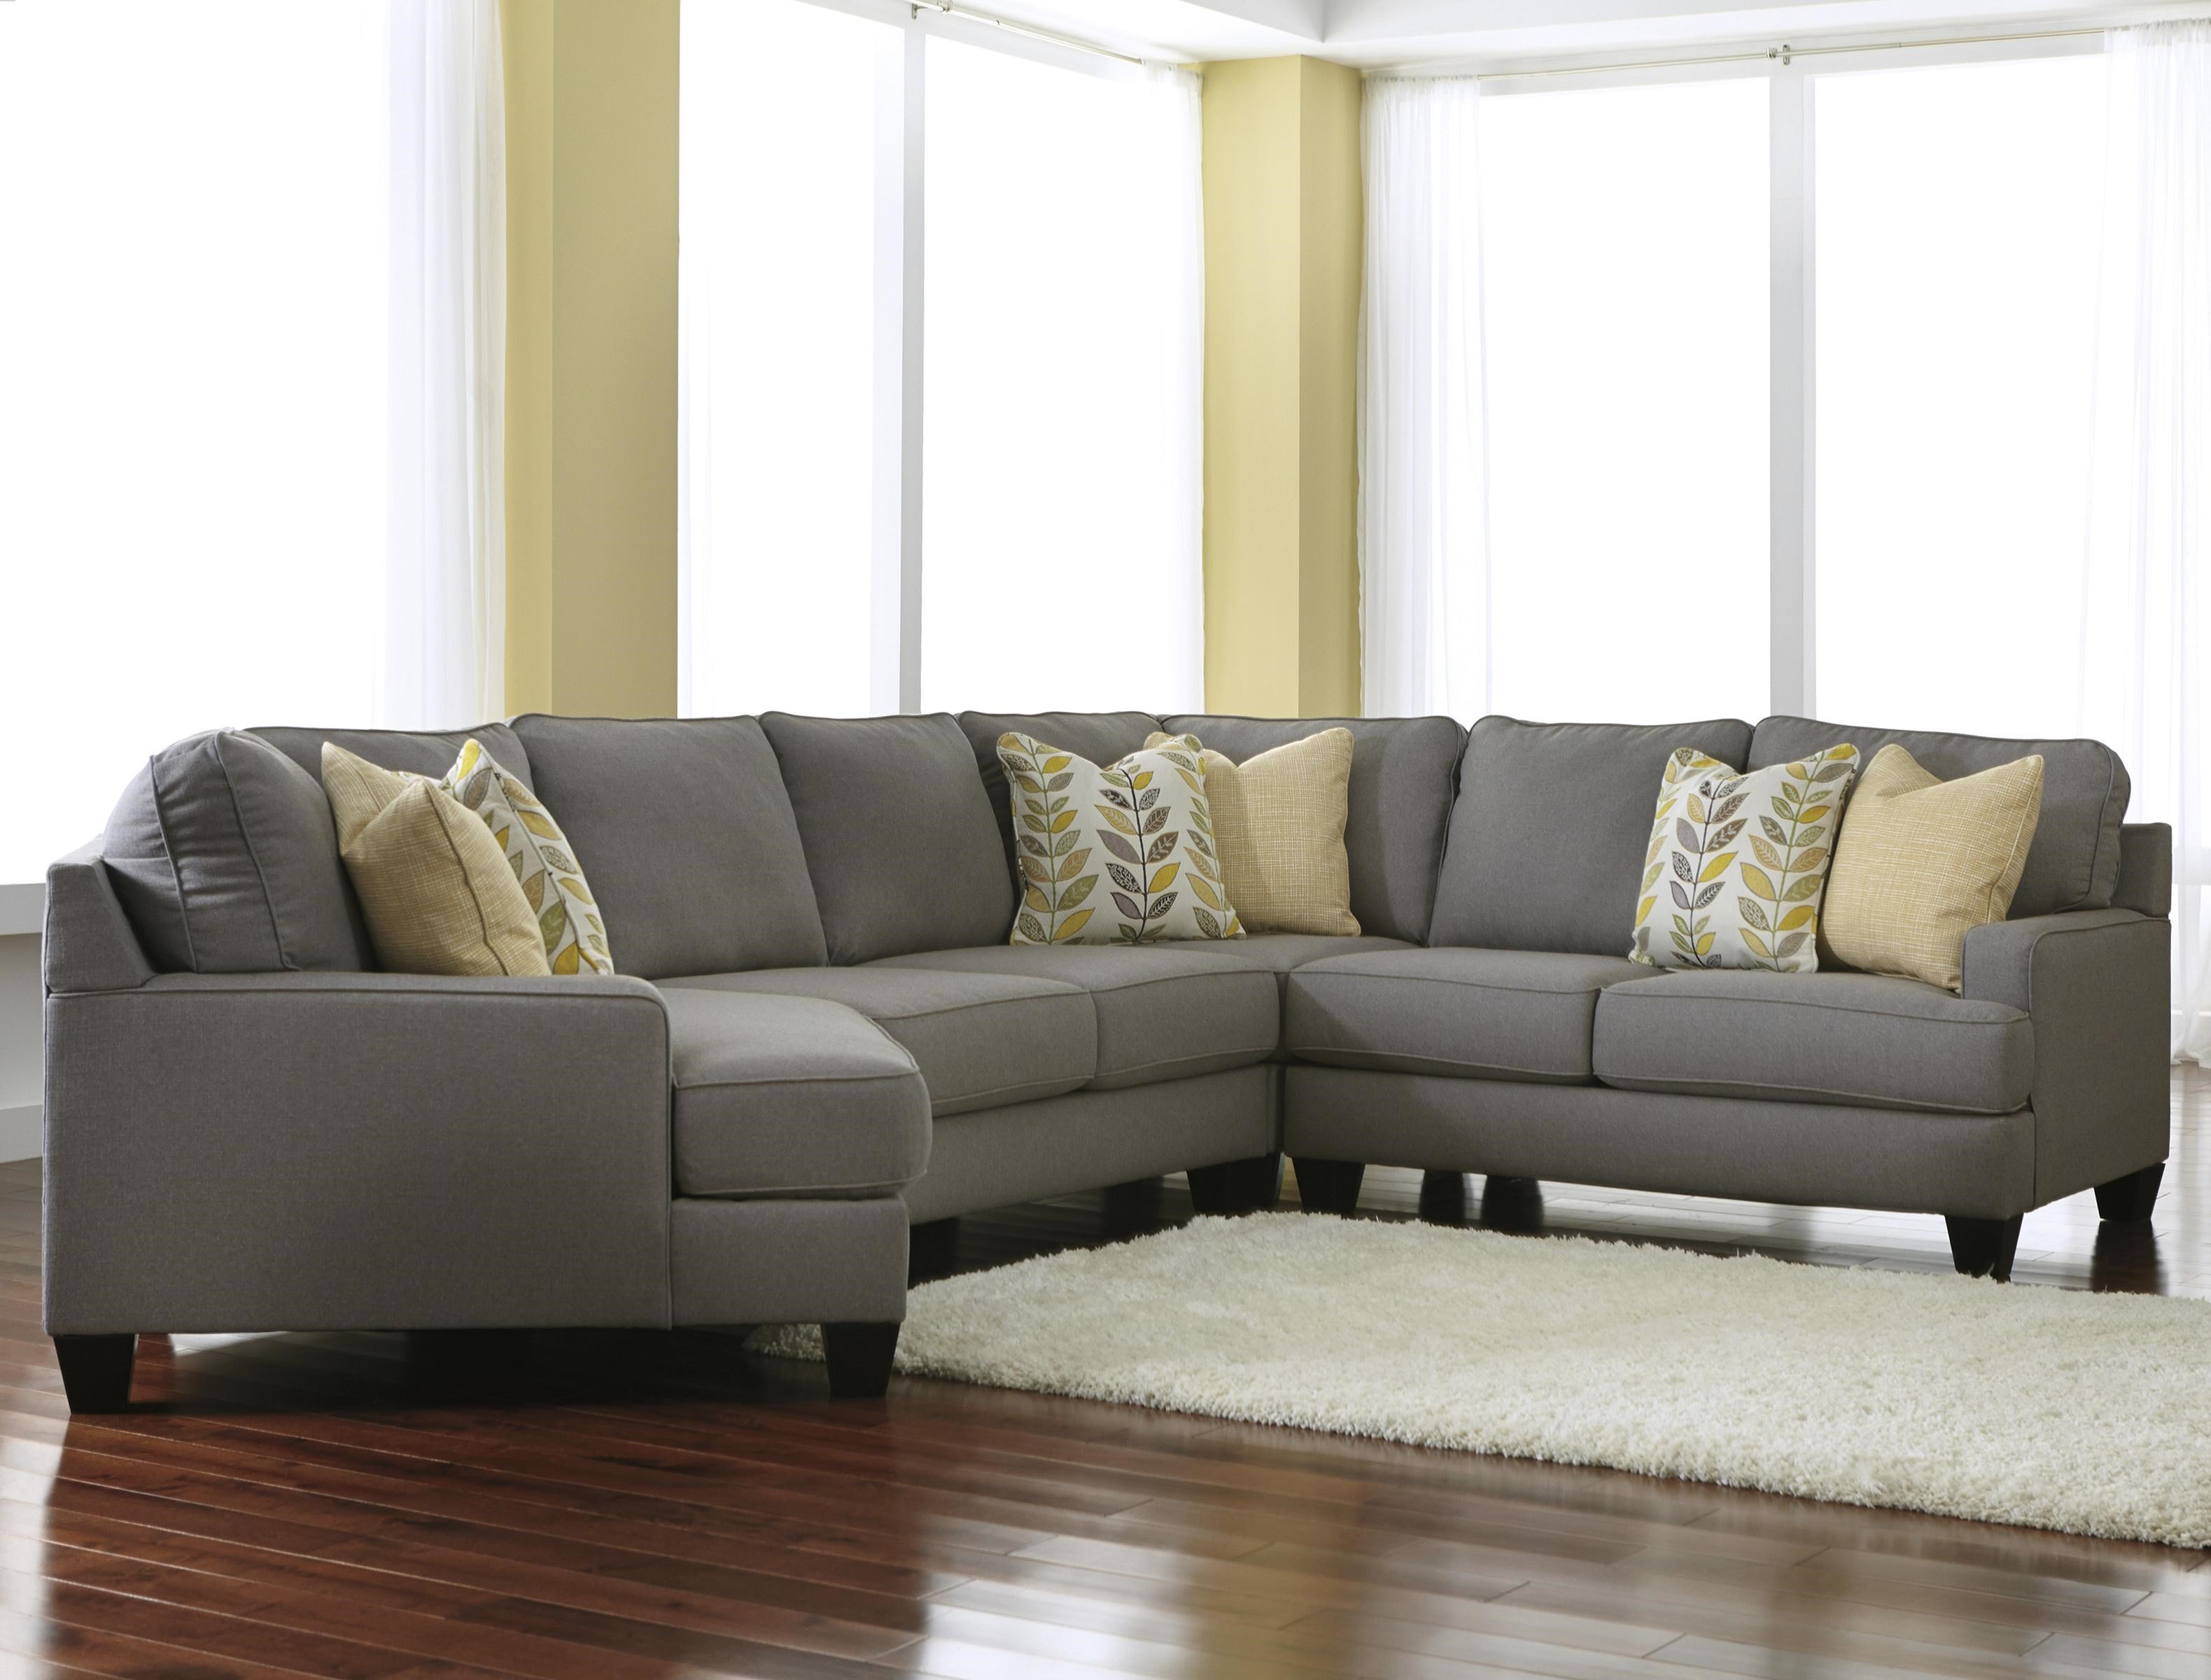 Signature Design By Ashley Chamberly   Alloy4 Piece Sectional Sofa With  Left Cuddler ...